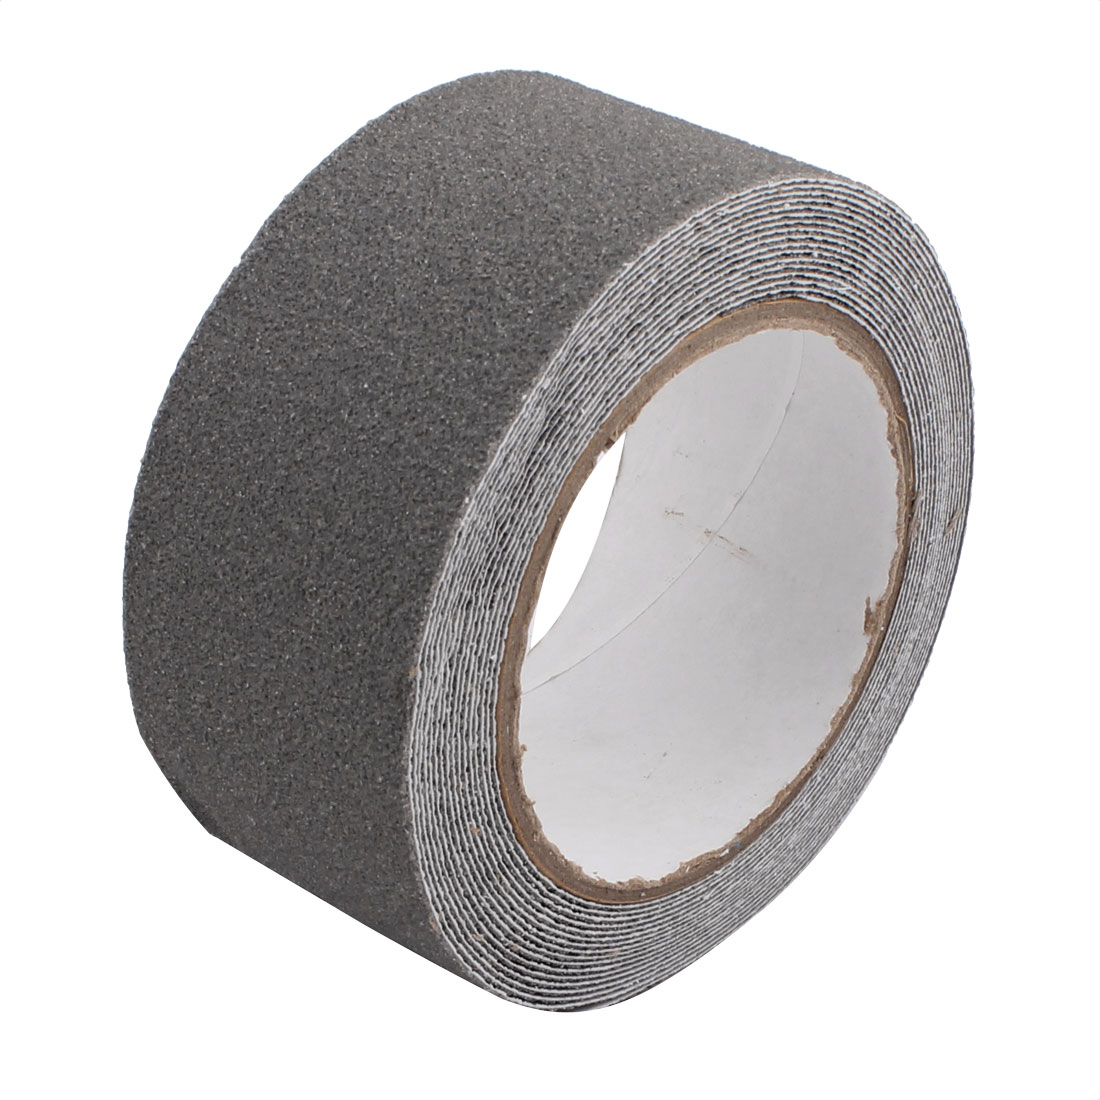 Gray Non-Slip Grip Tape Safety High Traction Indoor Outdoor 50mmx5m